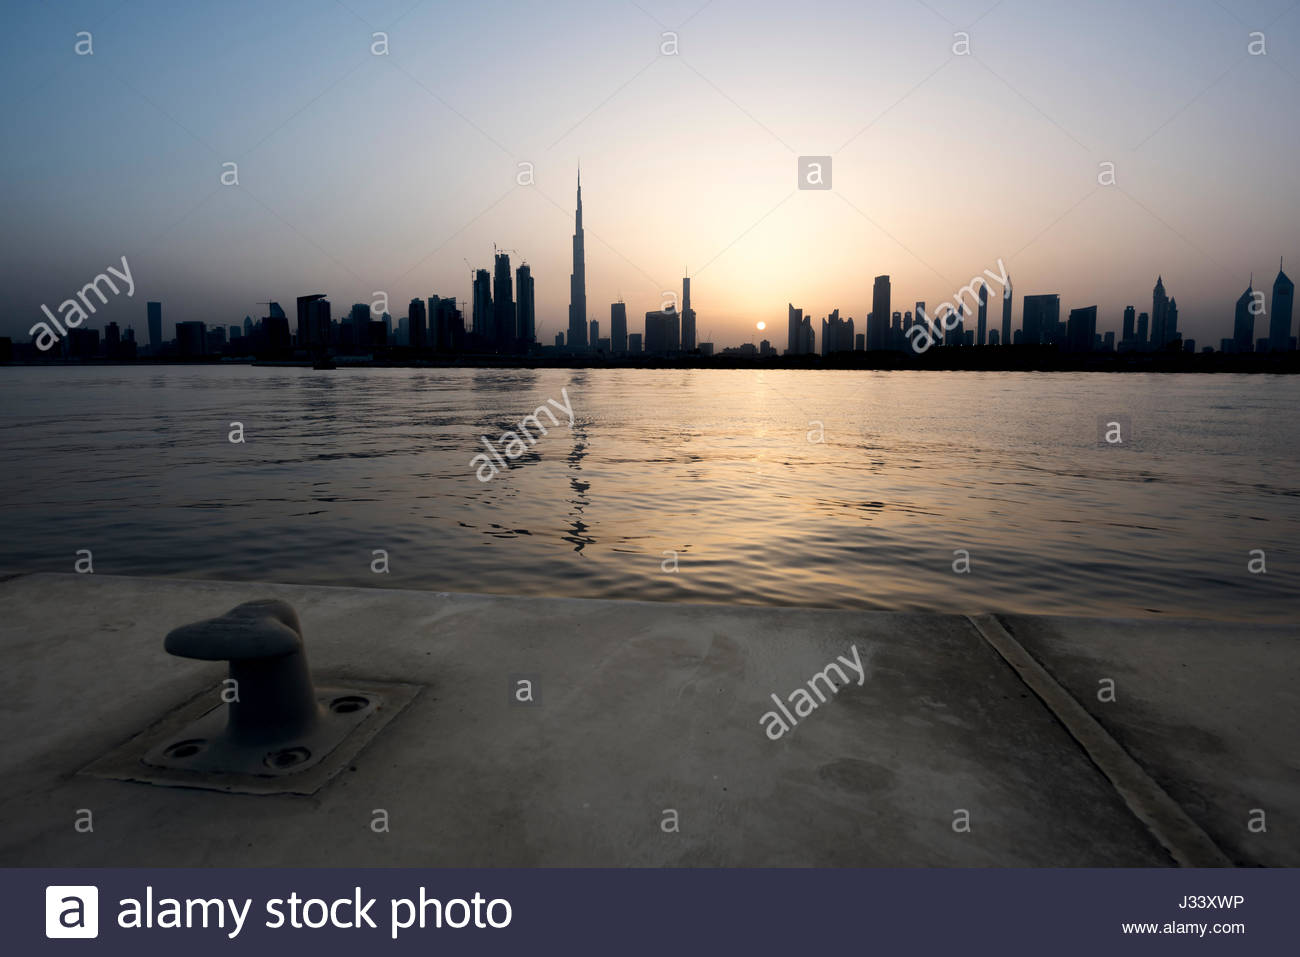 Silhouette of Dubai during a nice sunset on the city, view from the water canal with anchor hook in foreground, - Stock Image